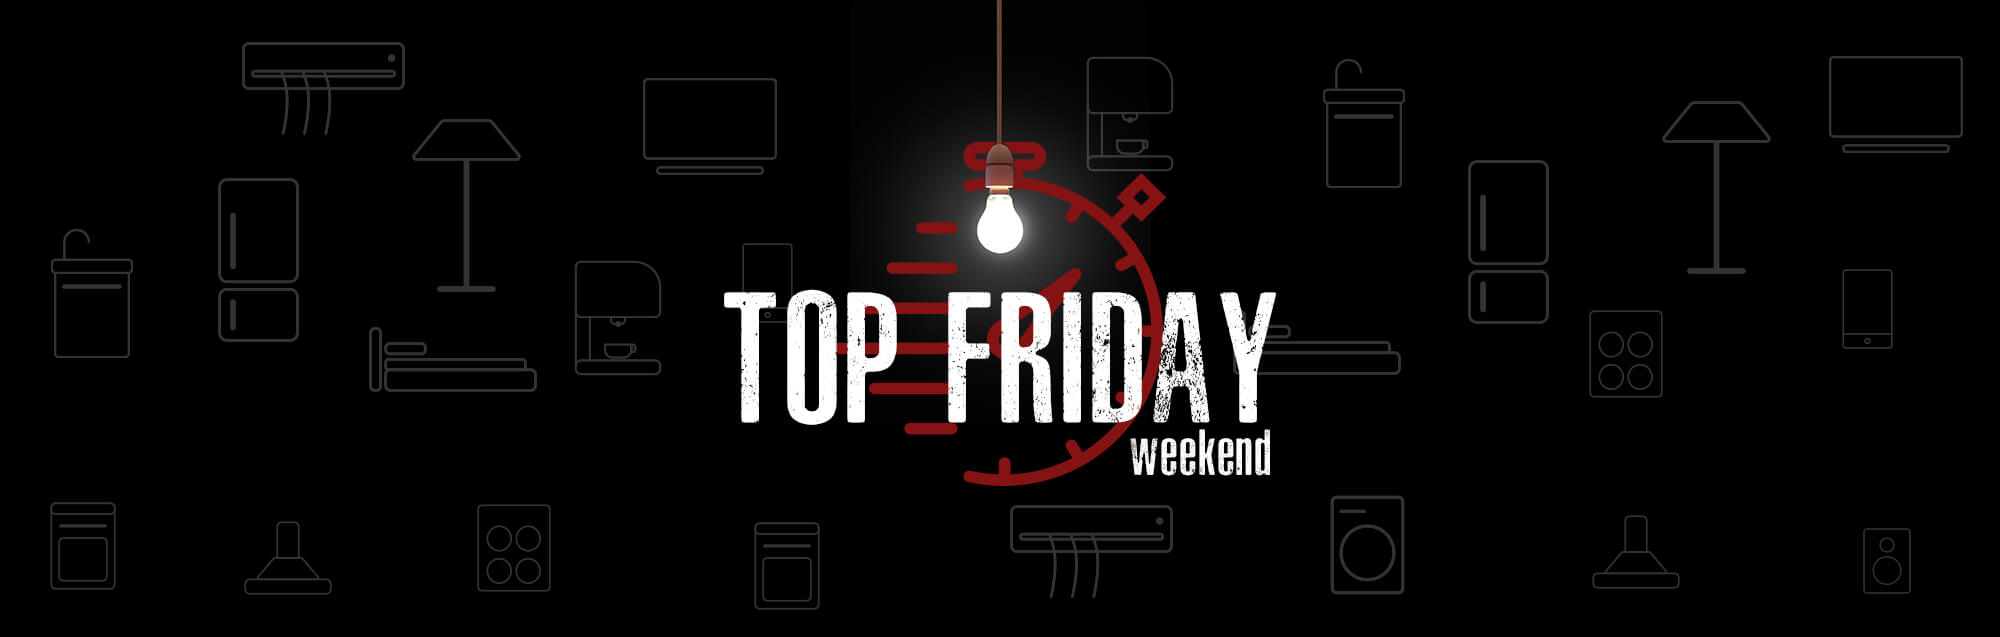 TOP FRIDAY weekend